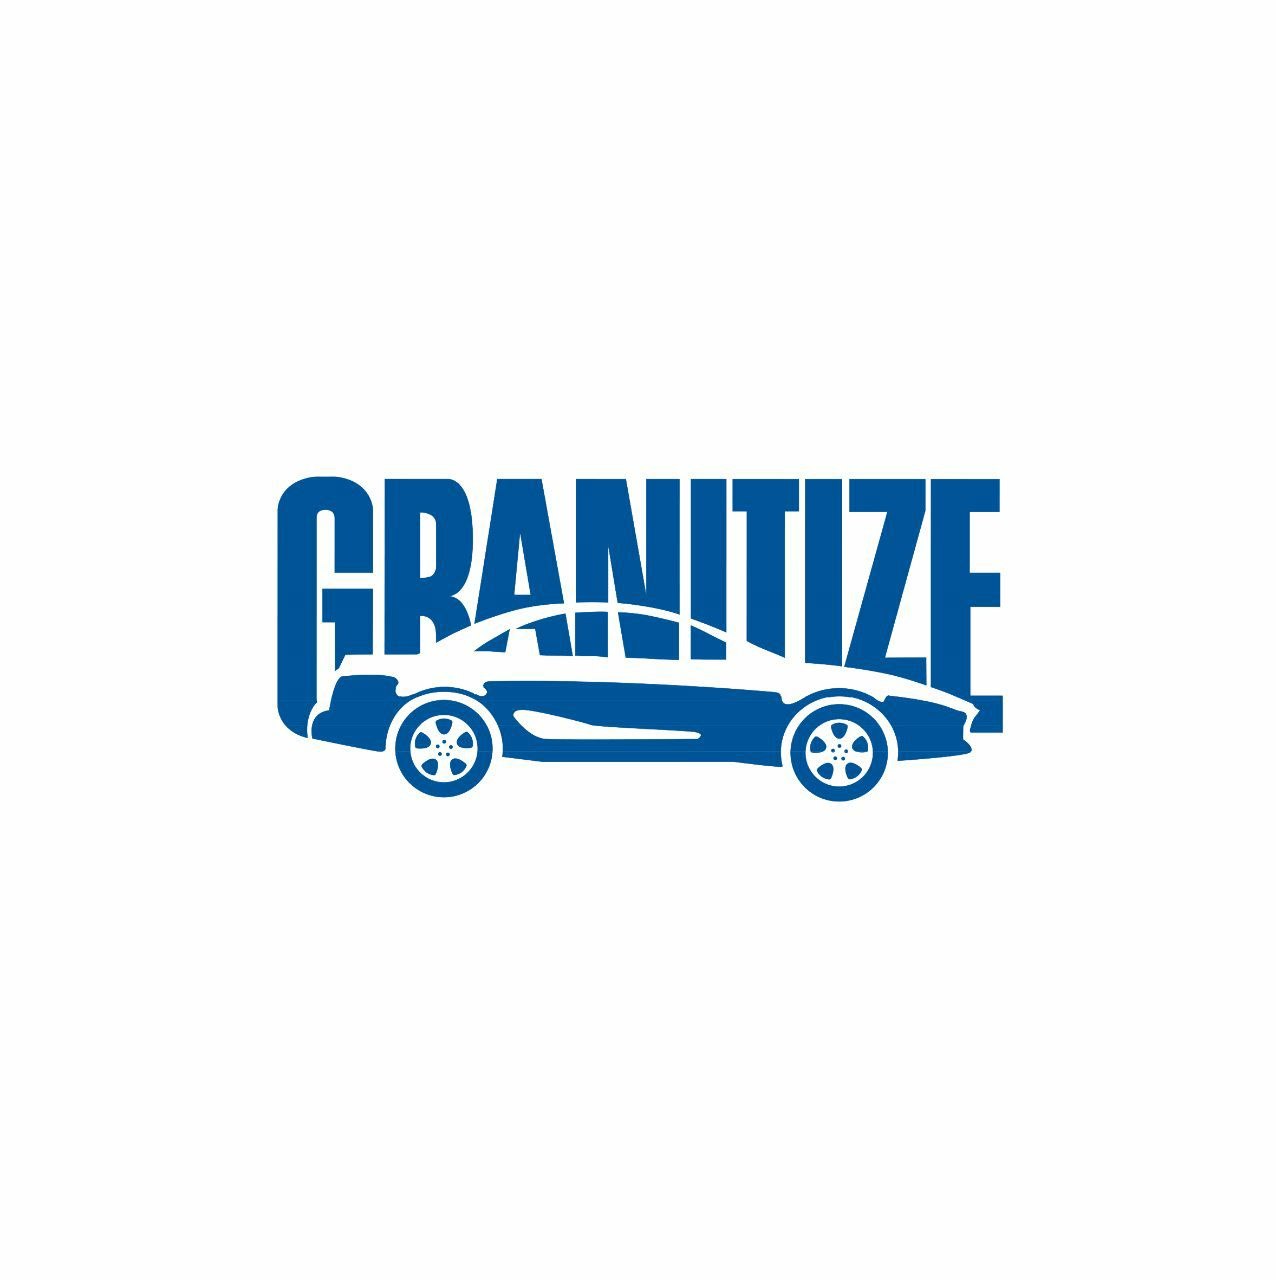 Granitize